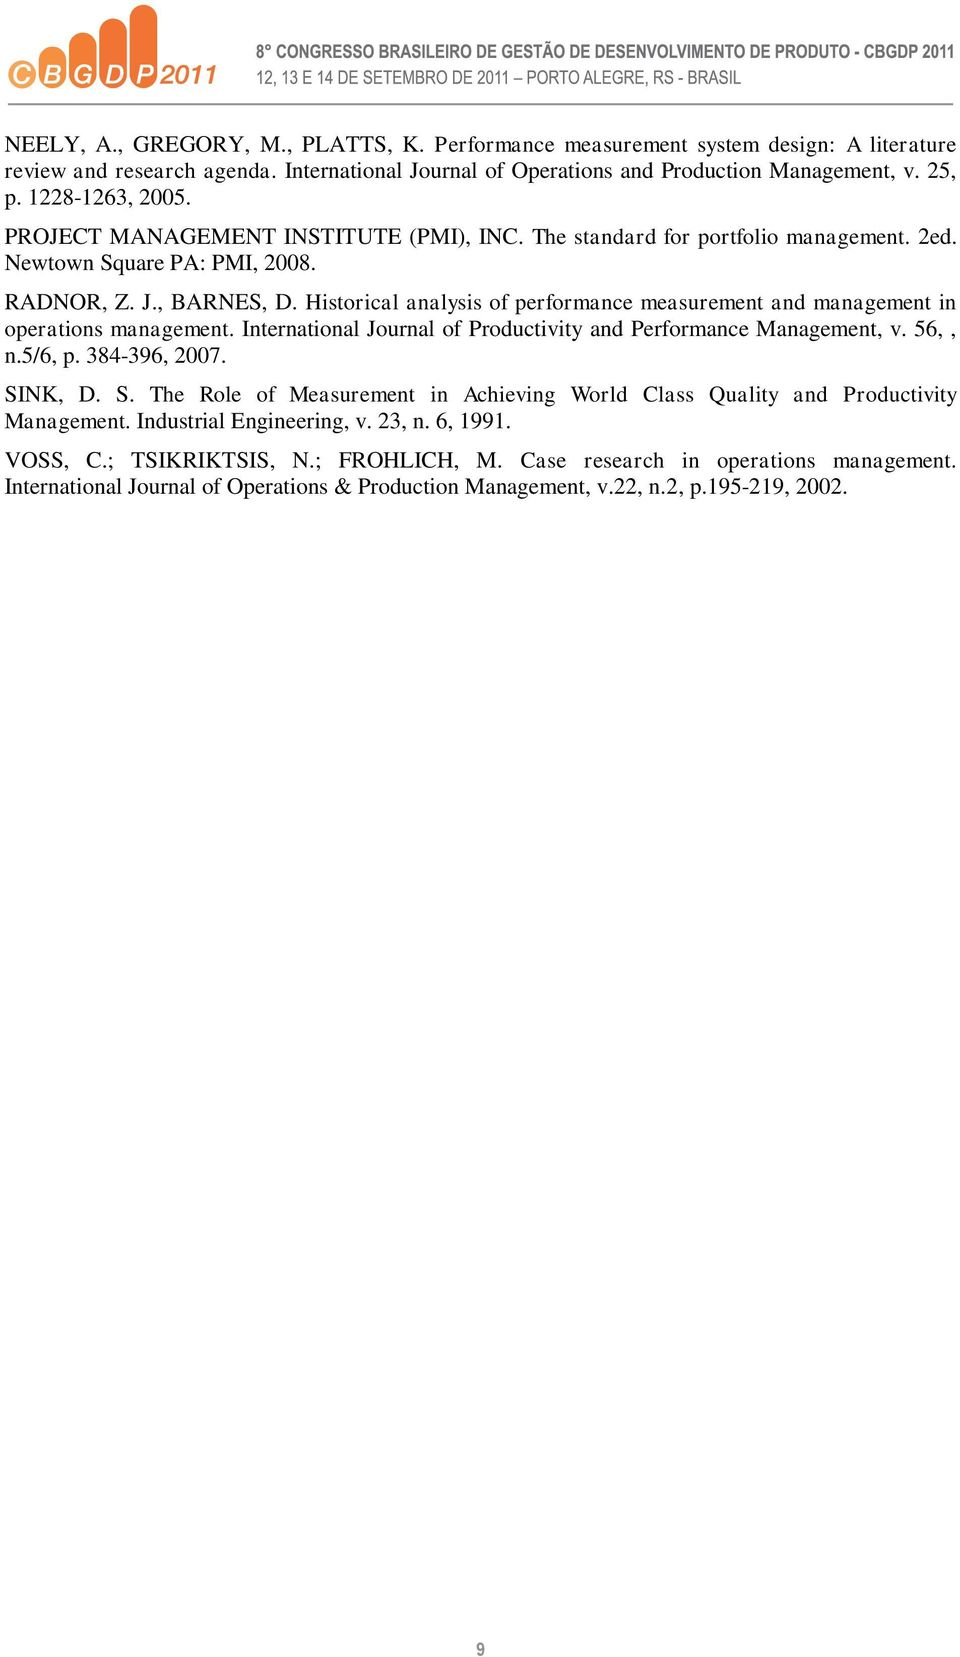 Historical analysis of performance measurement and management in operations management. International Journal of Productivity and Performance Management, v. 56,, n.5/6, p. 384-396, 2007. SI